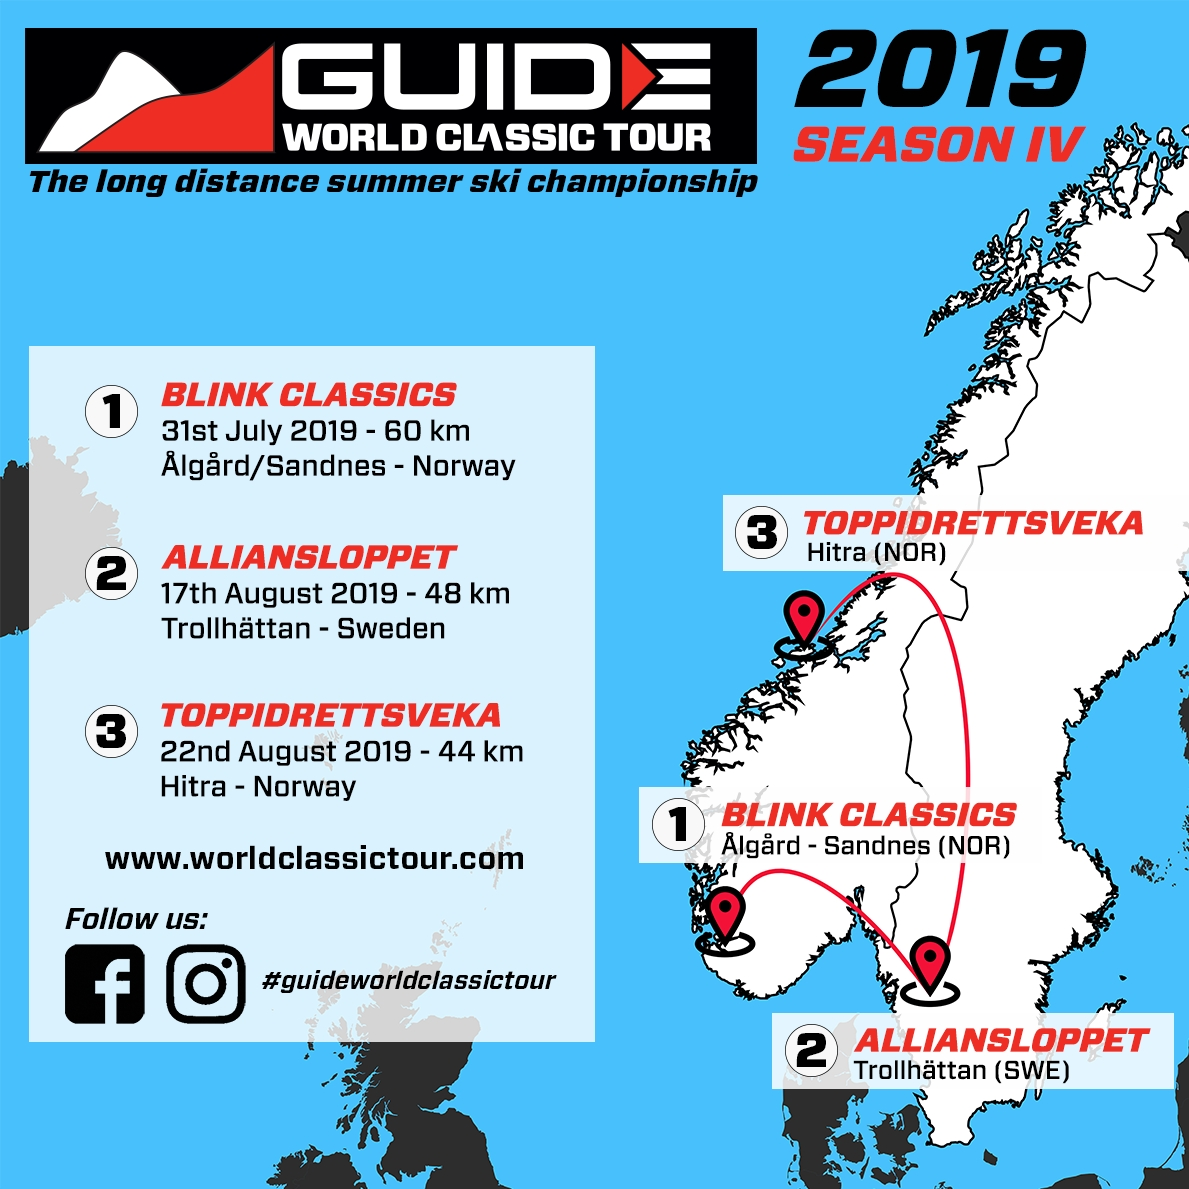 Map_worldclassictour_2019.jpg